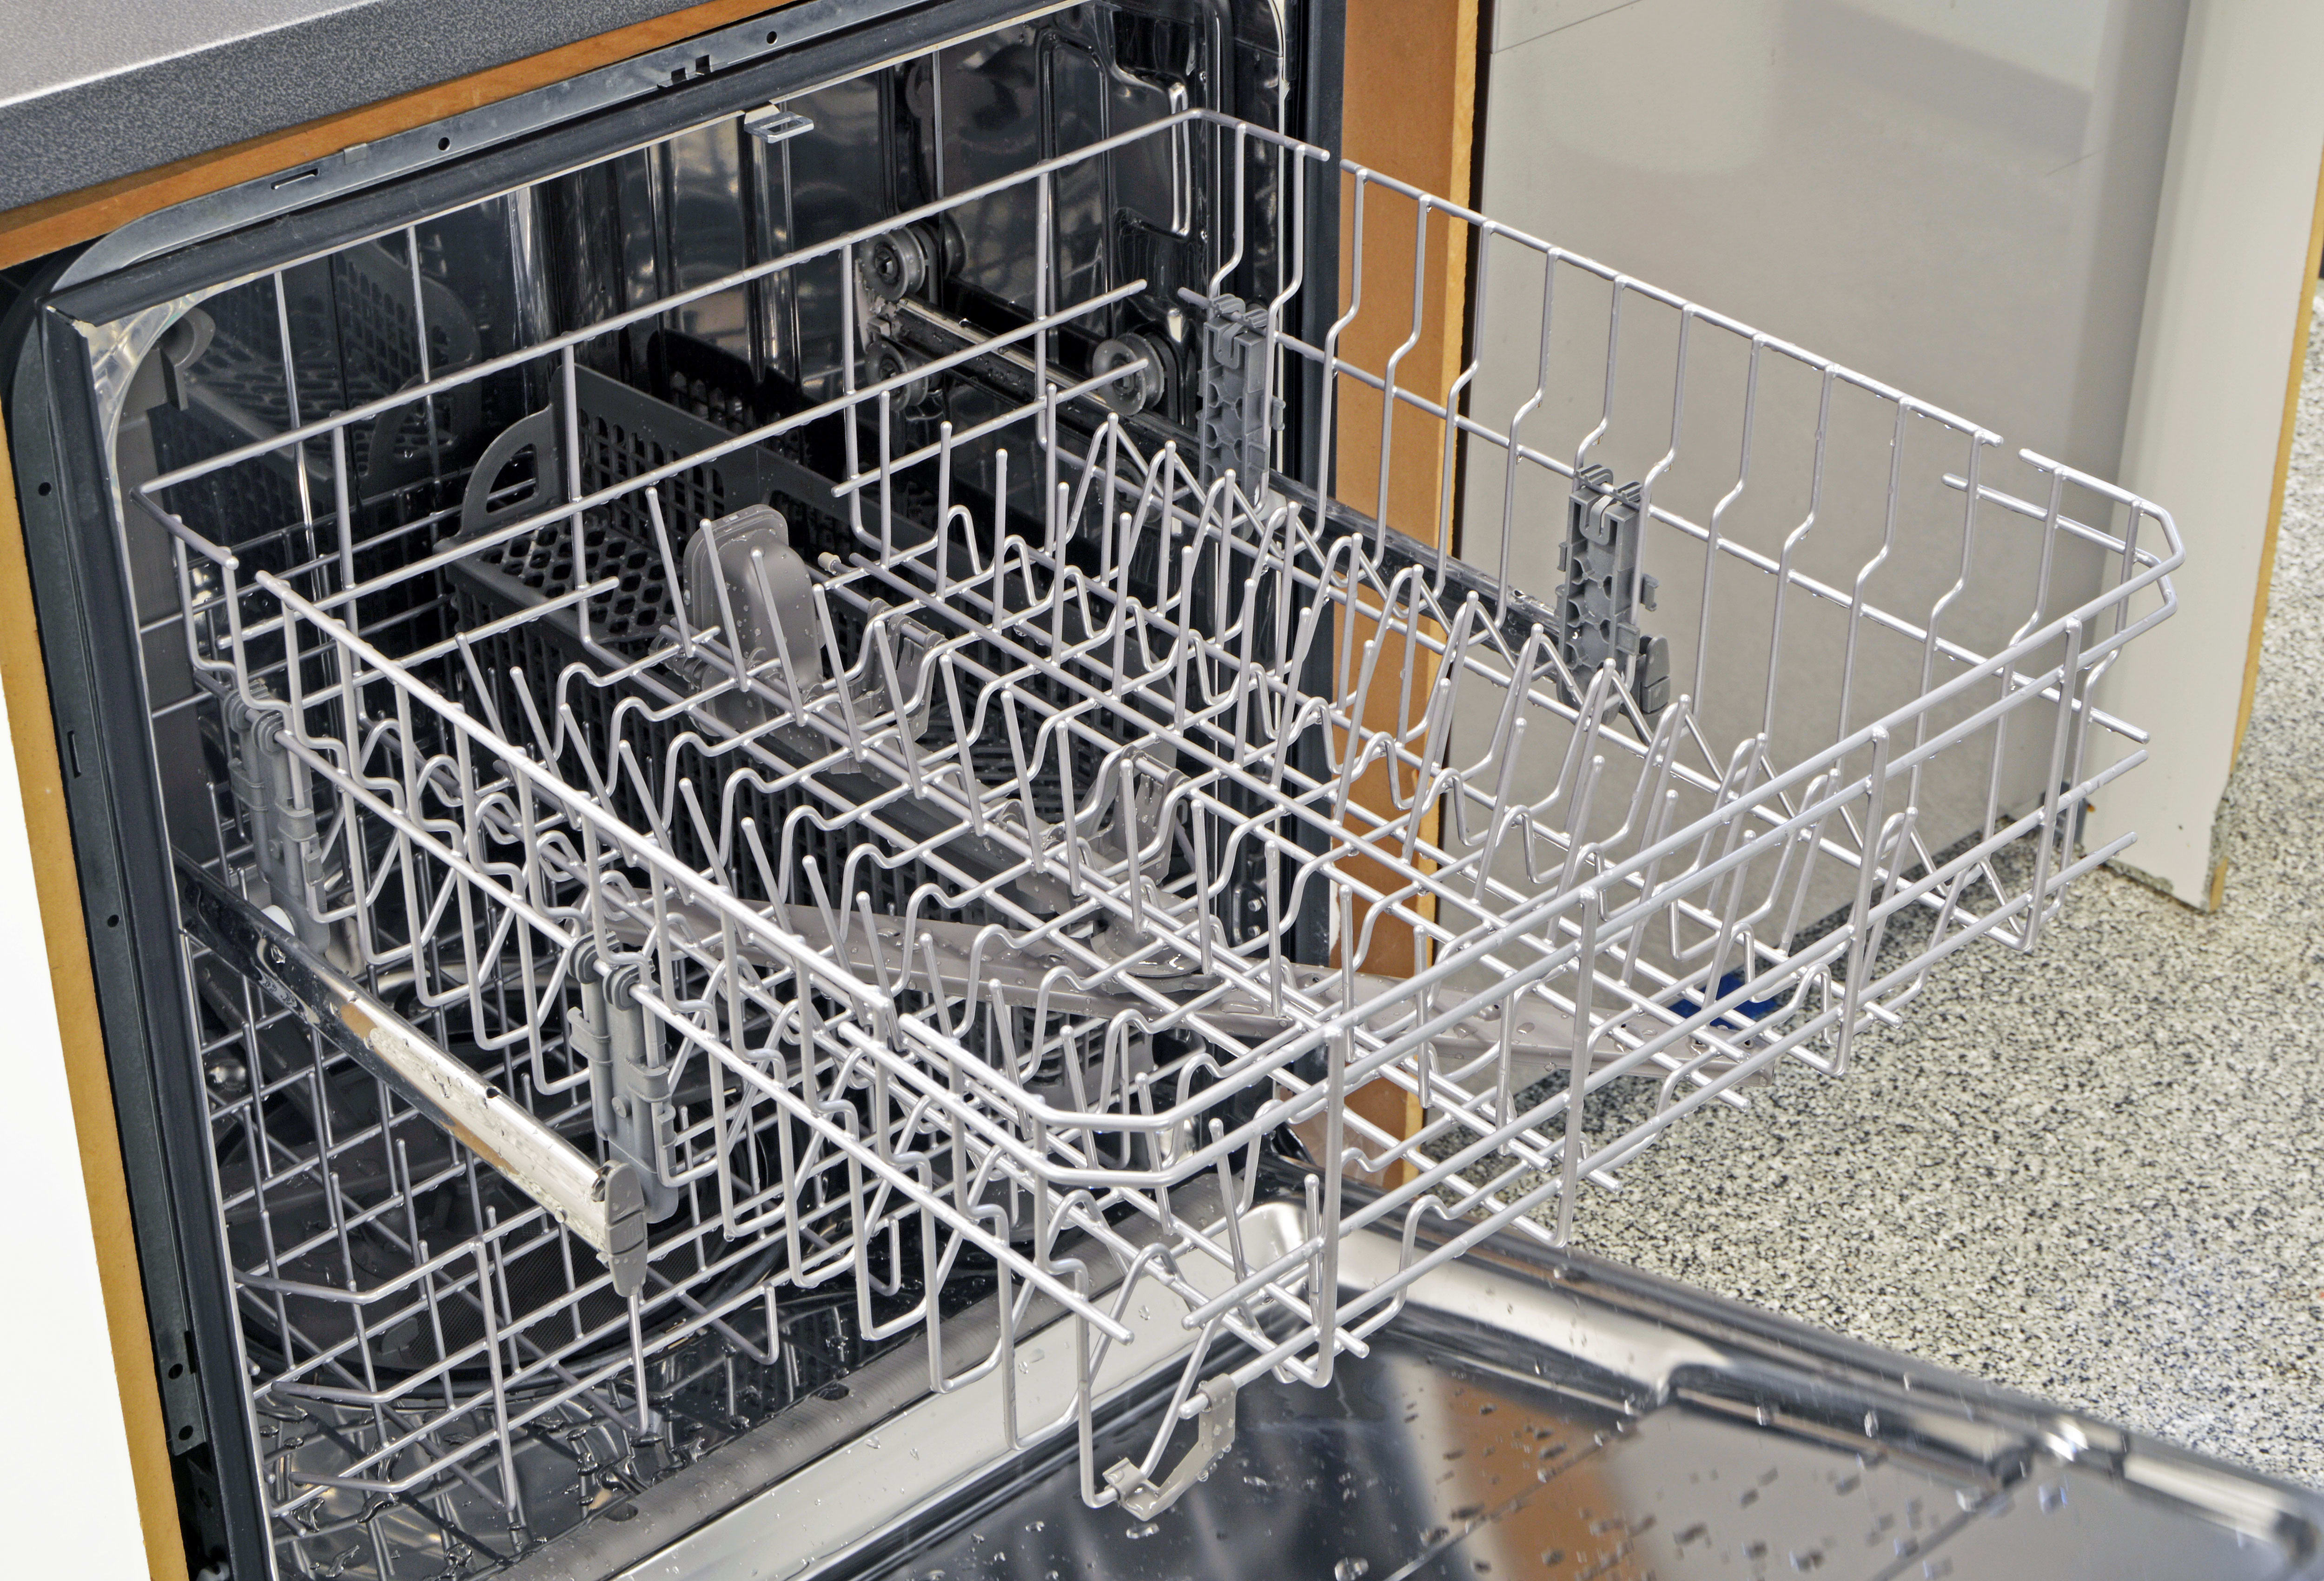 The IKEA Renlig IUD8555DX's upper rack is pretty straightforward, with angled tines suited to holding cups and bowls.